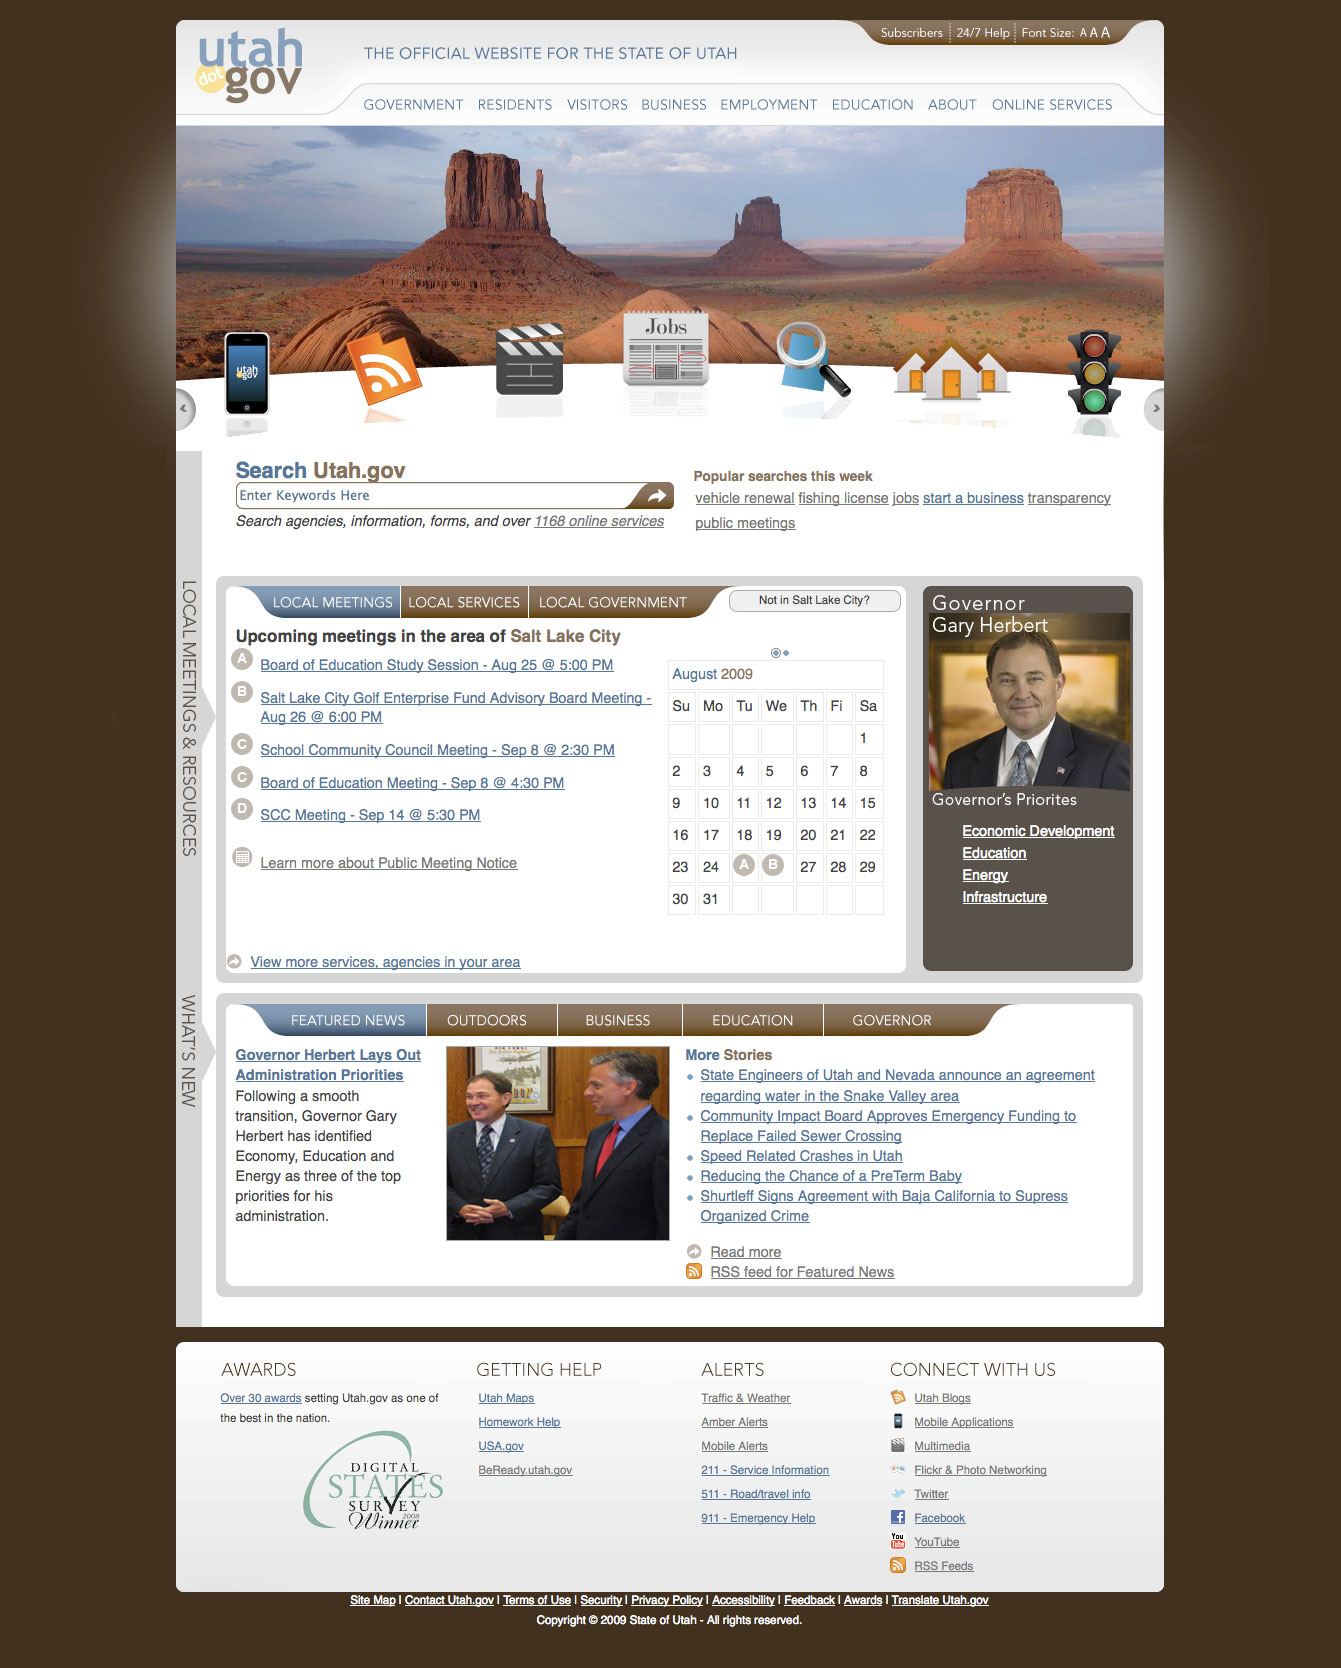 Utah.gov/The Official Website of the State of Utah image